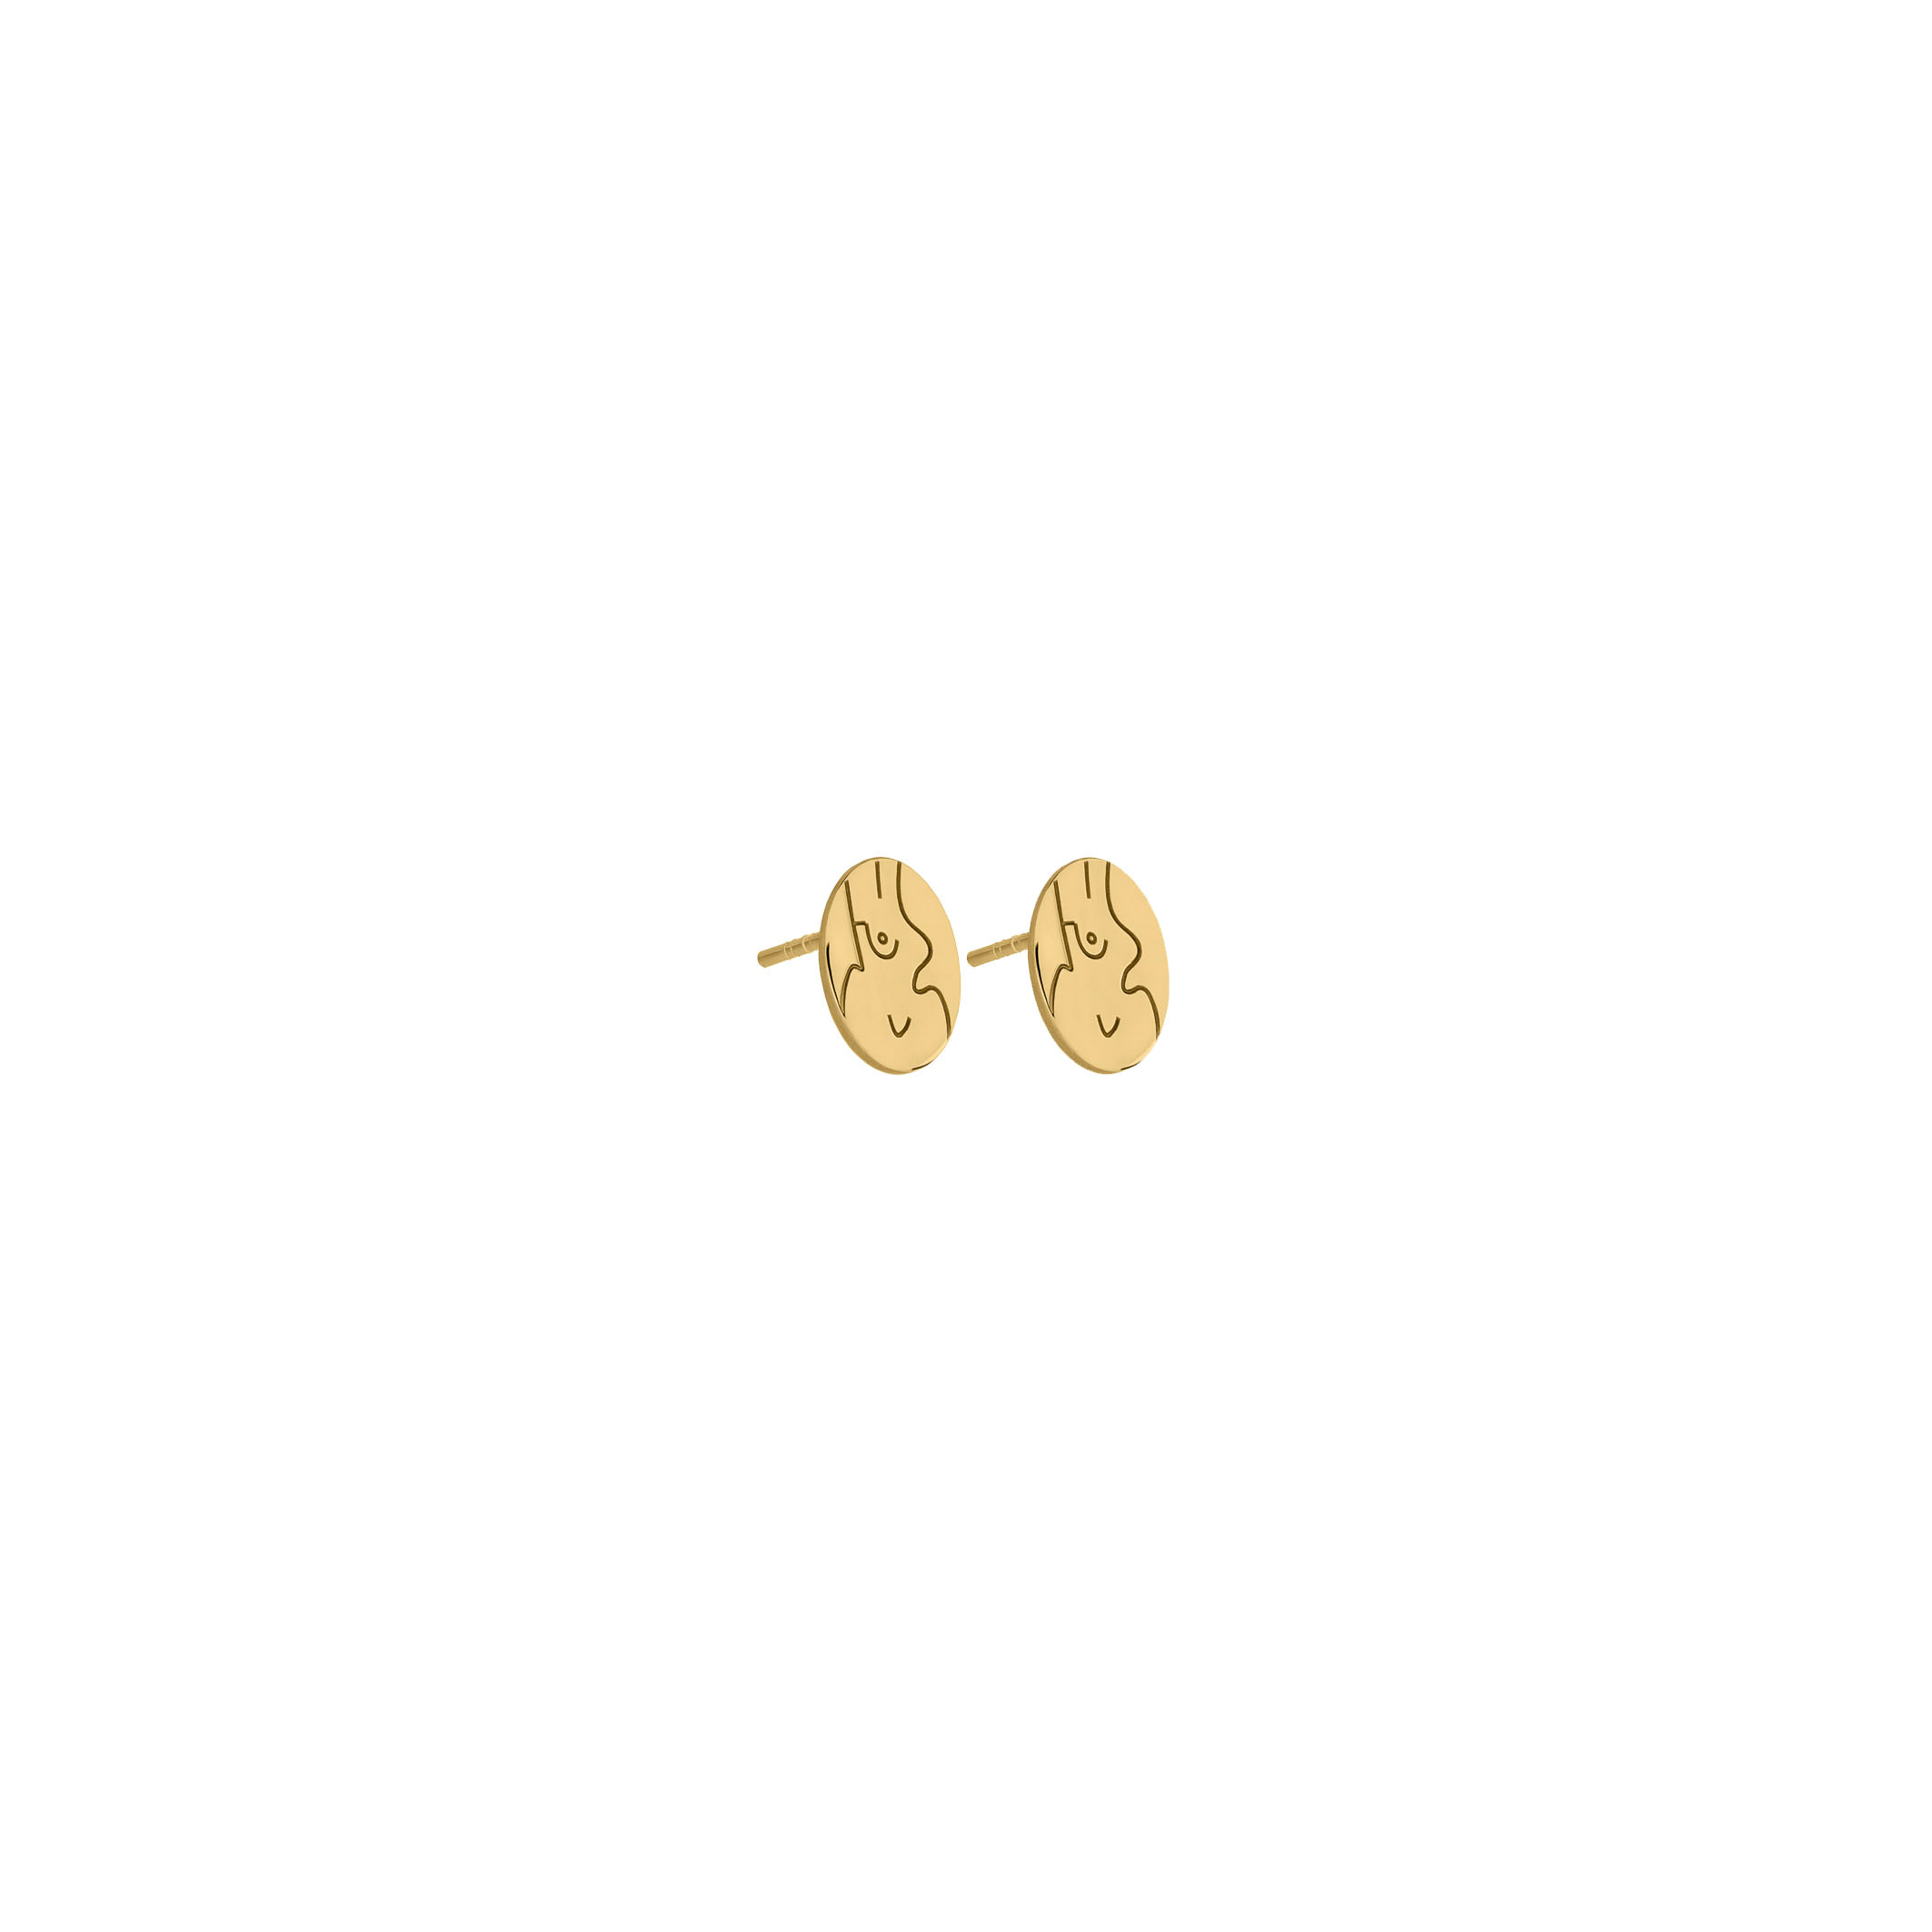 MINI EARRINGS FEMININ